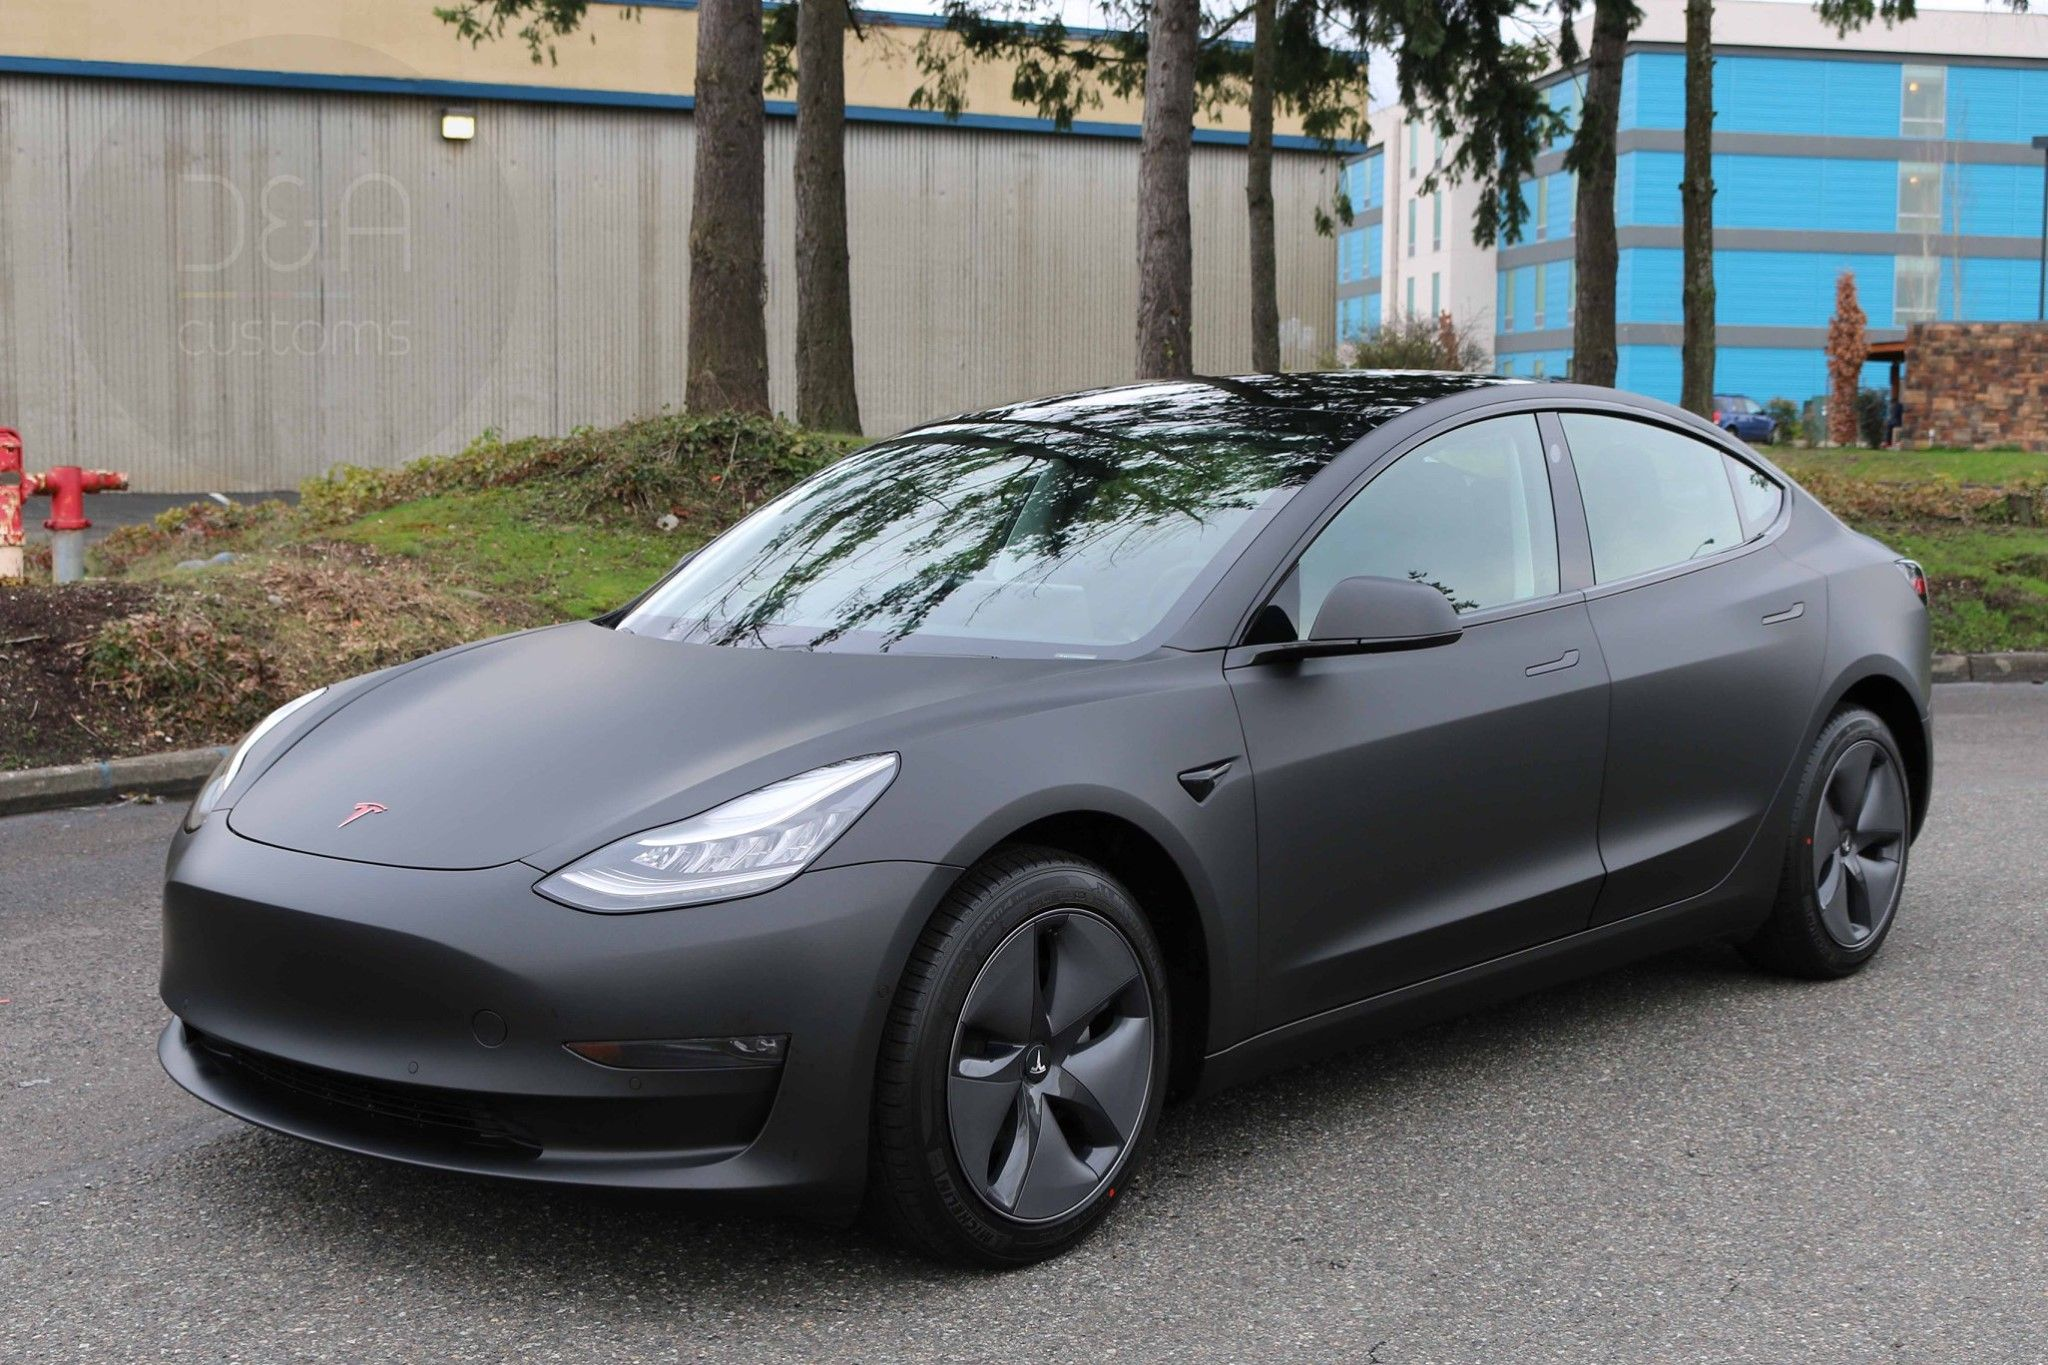 2020 Tesla Model 3 Full Wrap Matte Black Metallic And Full Chrome Delete Package With Gloss Black Tesla Model Tesla Commercial Window Tinting